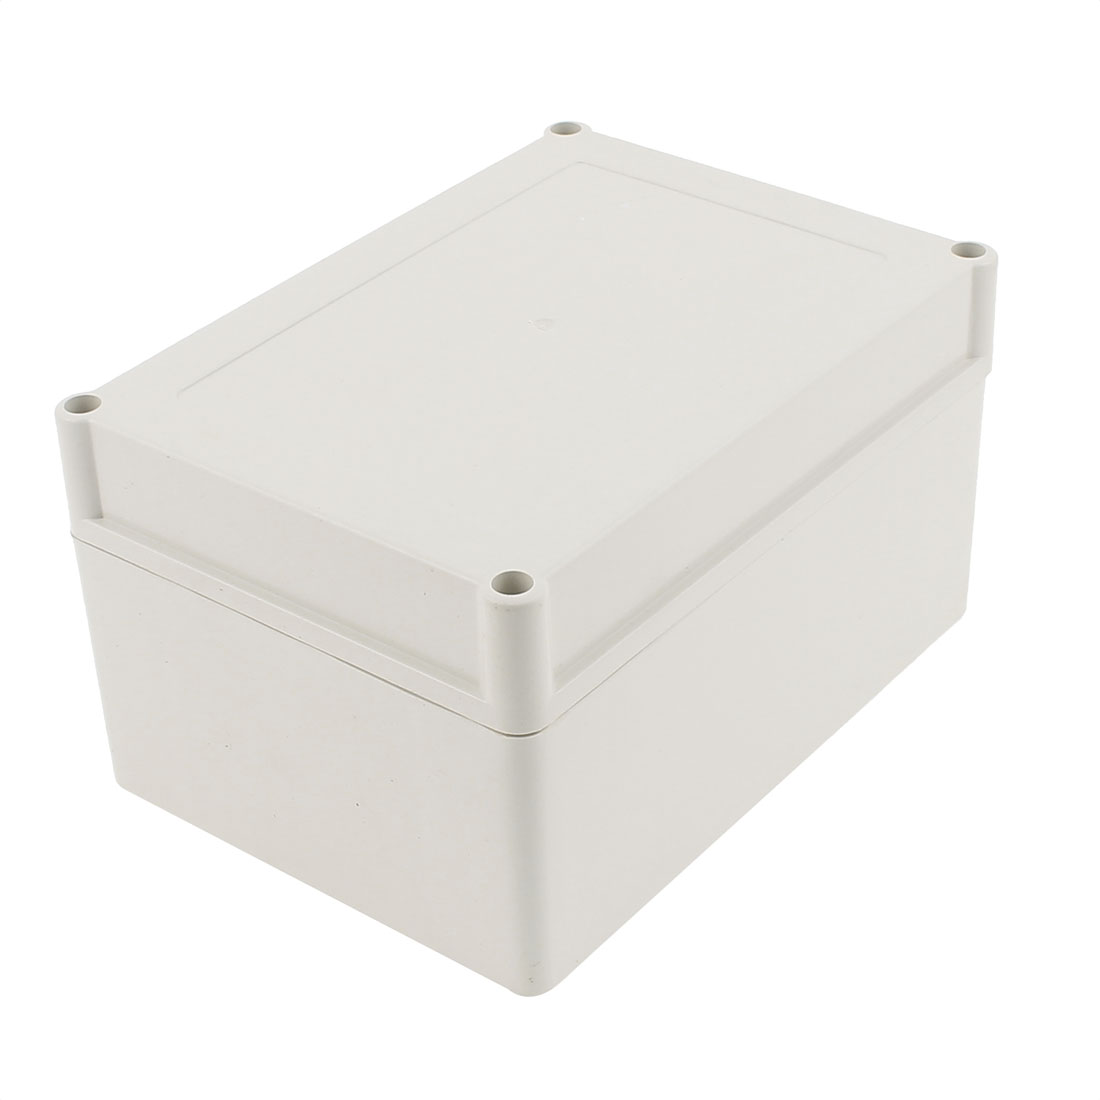 180 x 130 x 100mm Dustproof IP65 Junction Box DIY Terminal Connecting Enclosure